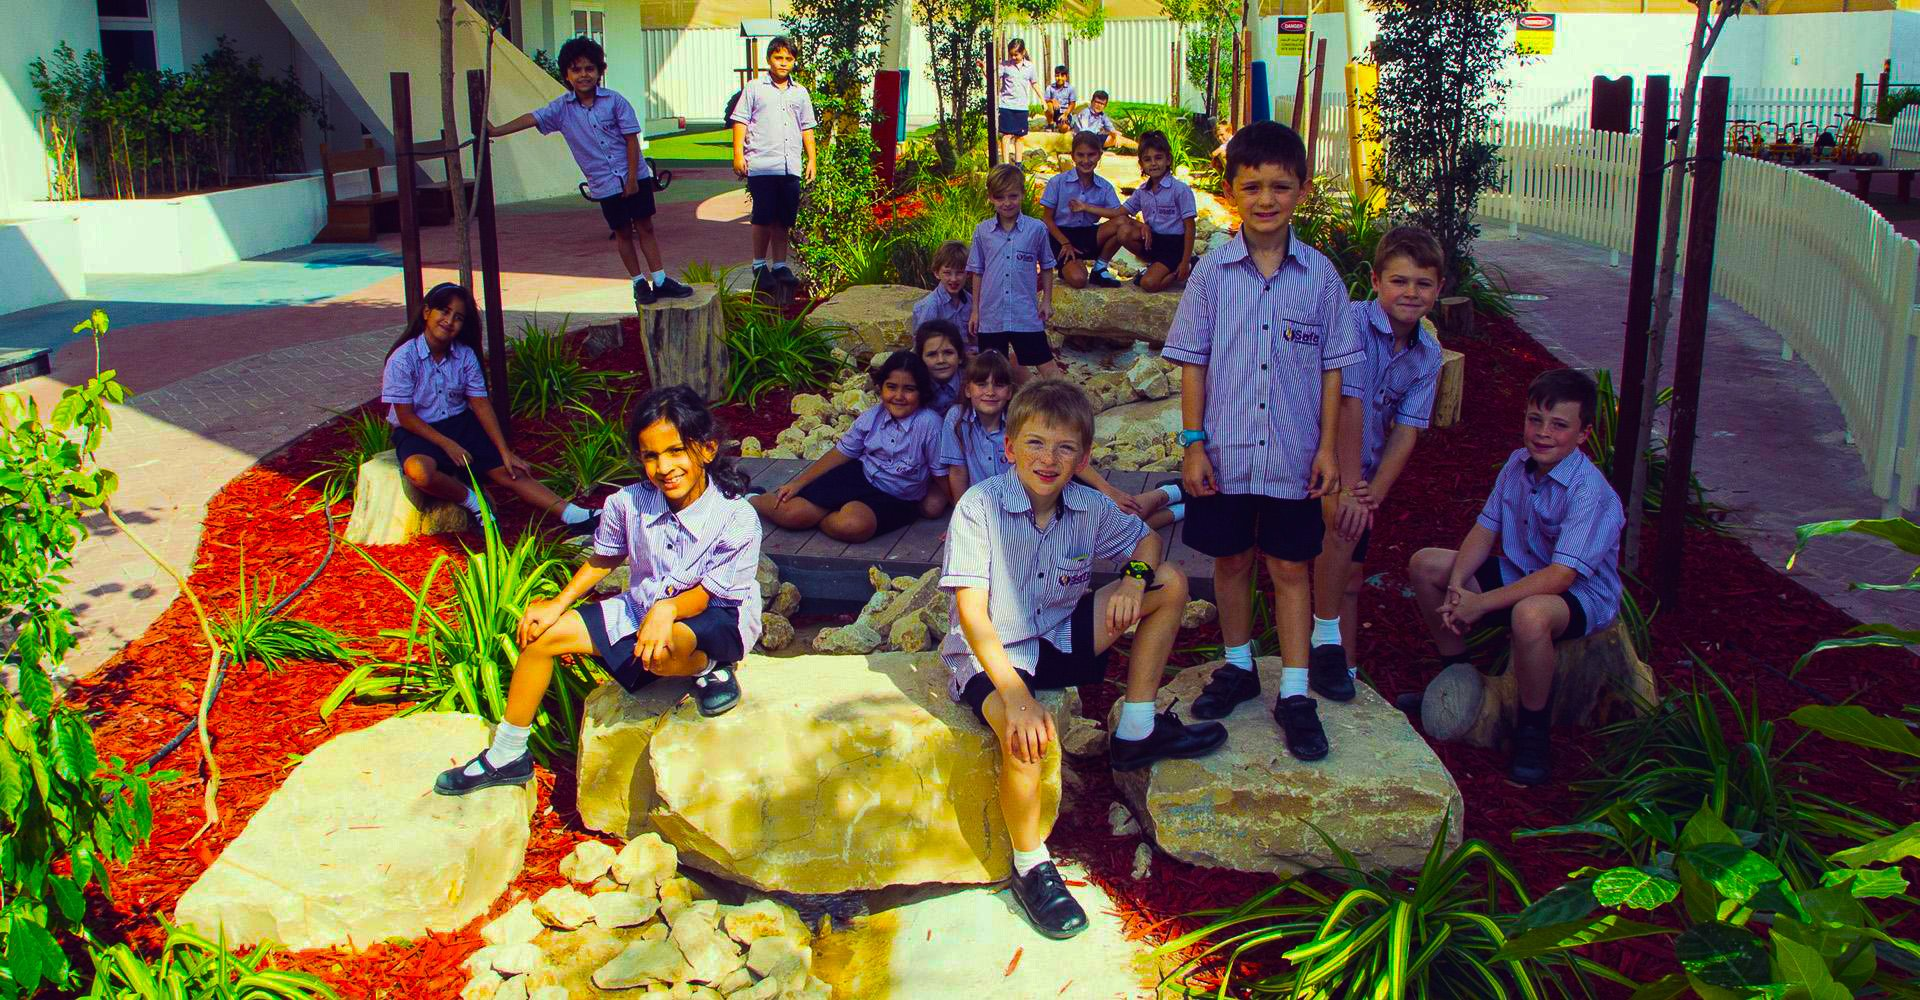 Image showing children within one of the many outdoor water features for play and learning at Safa Community School in Dubai